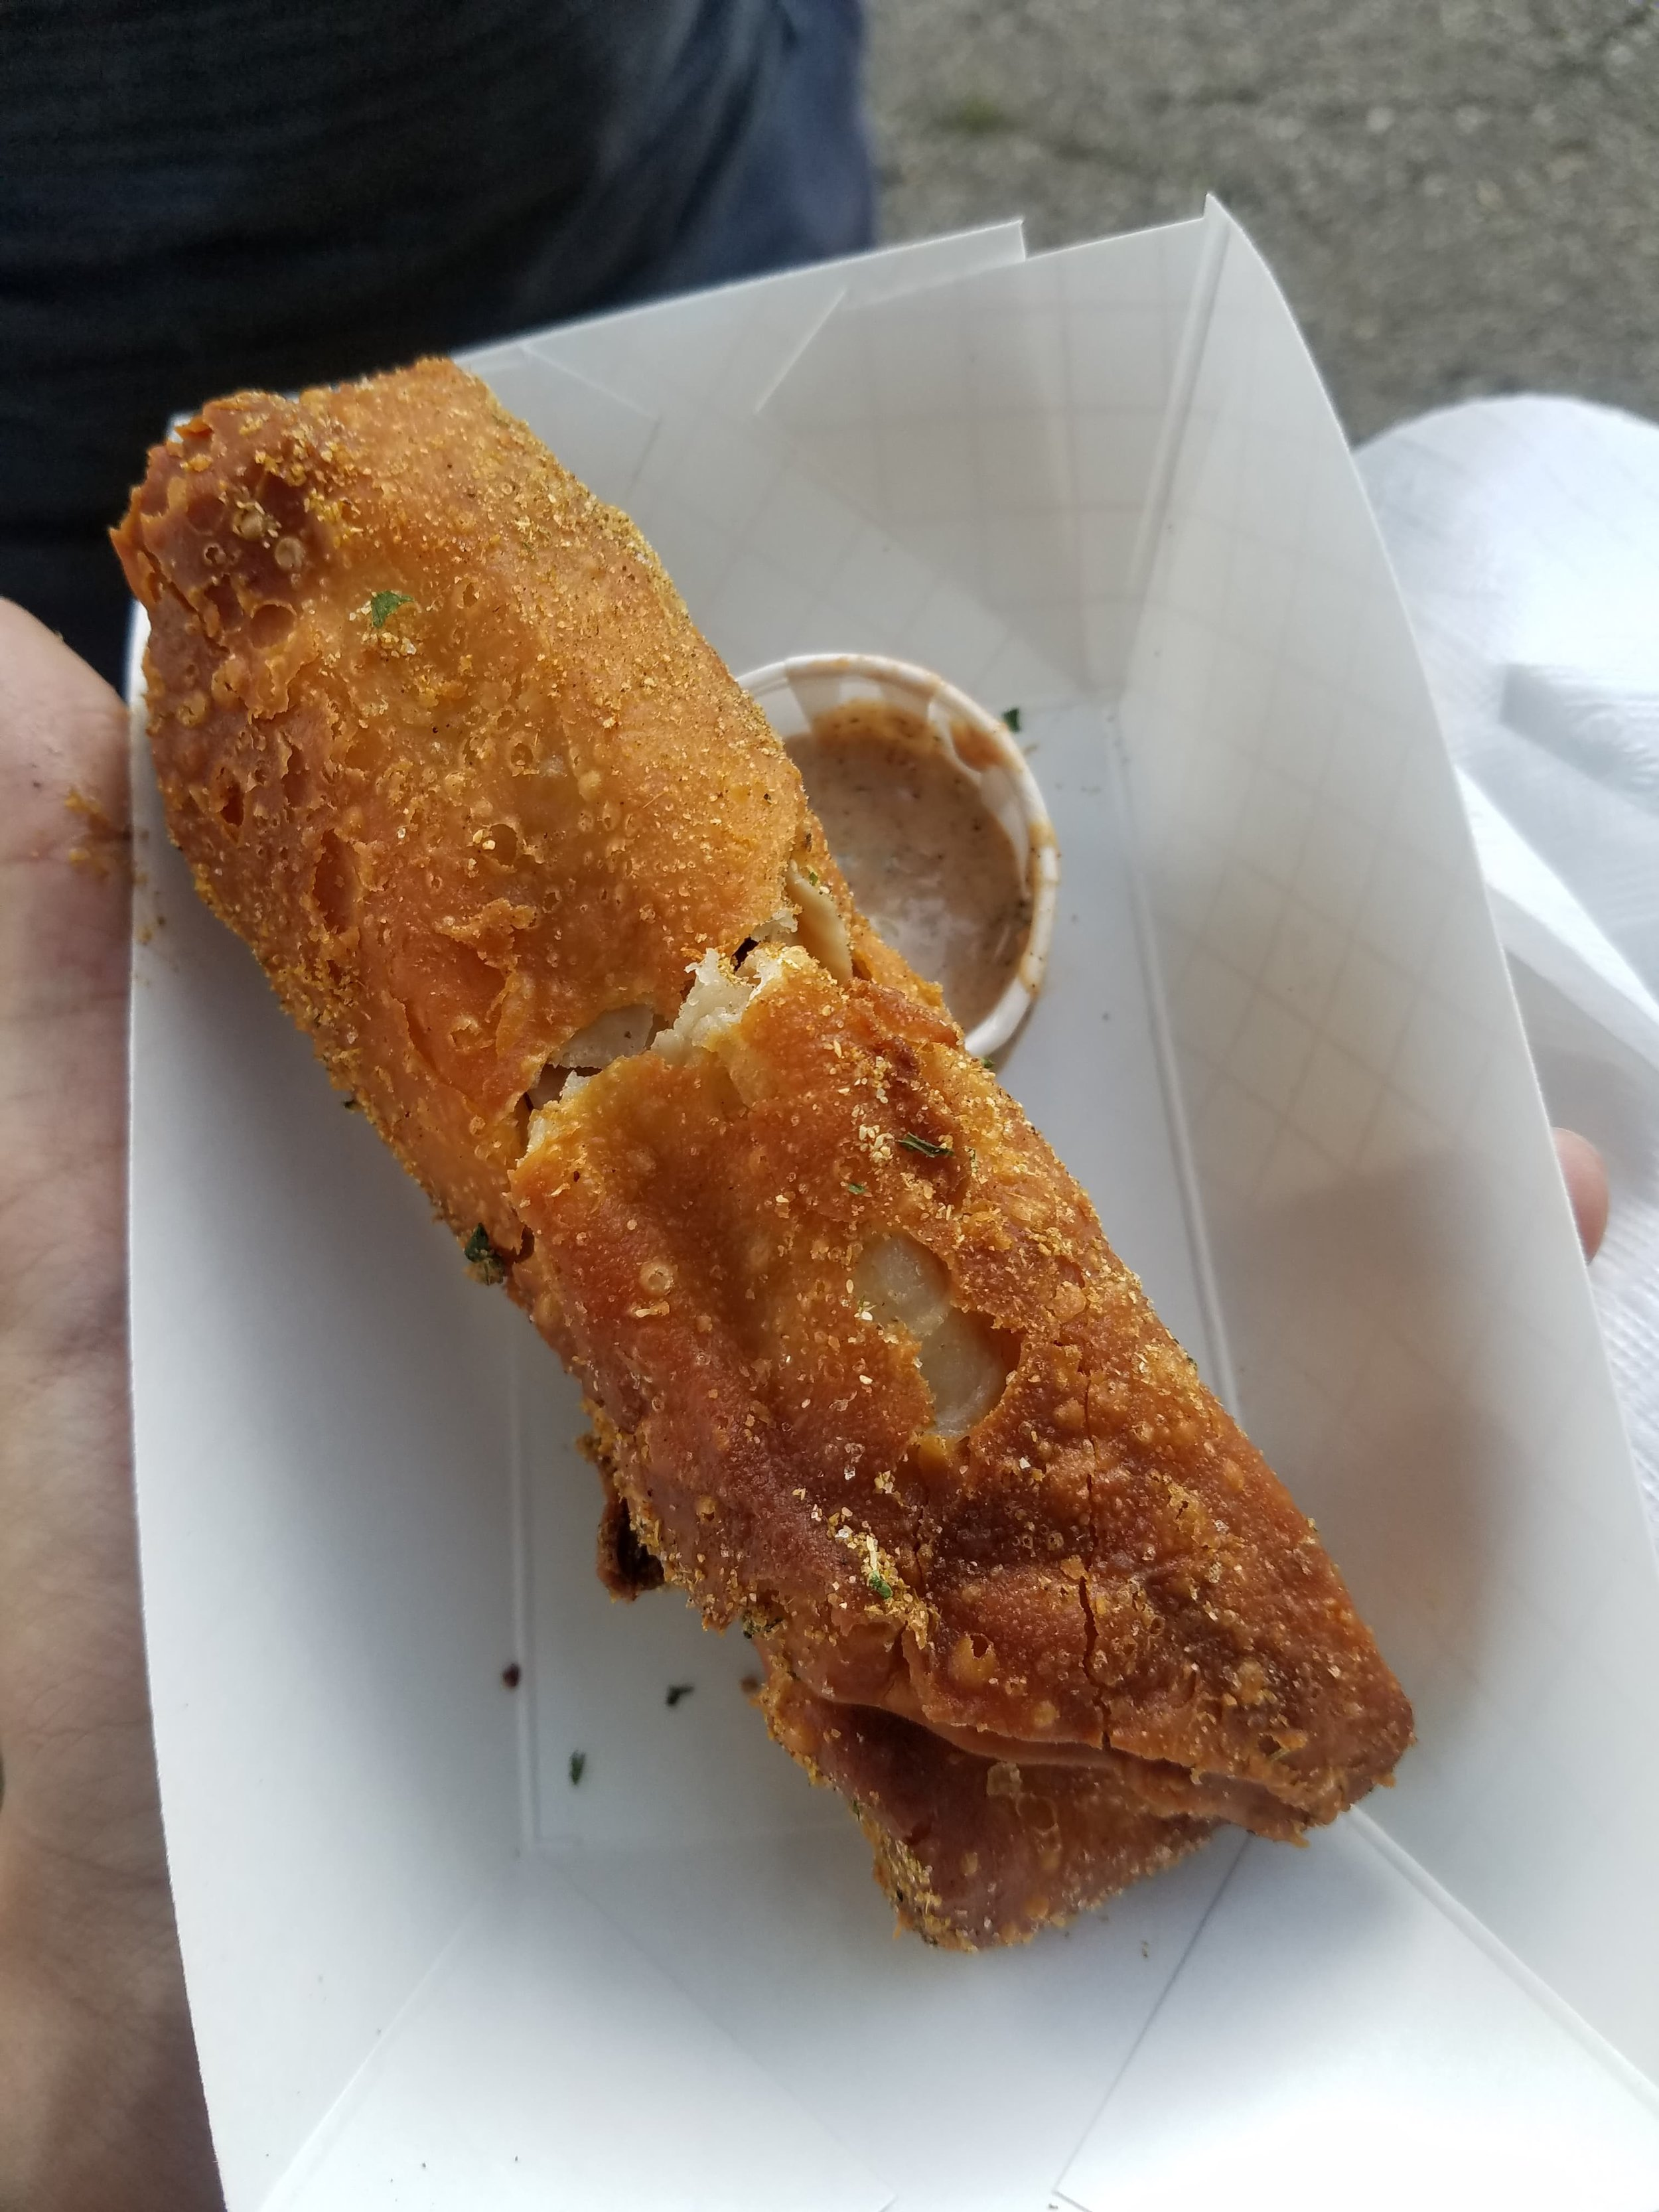 Taco Ole with Ground Turkey Egg Roll - The regular outside belies a delicious, traditional Mexican inside.